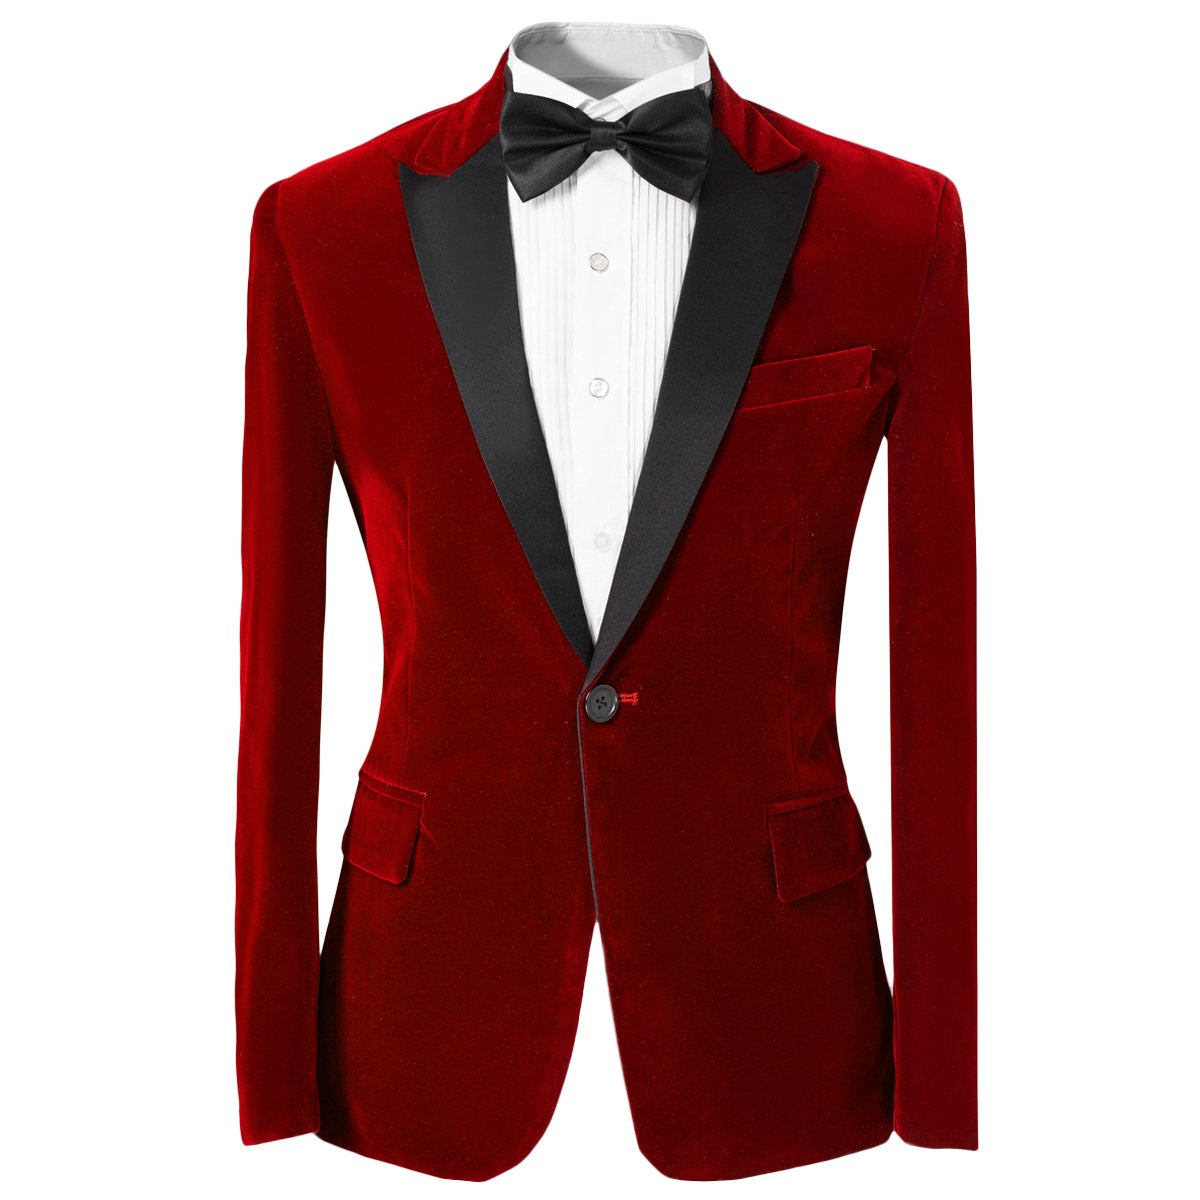 Mens 2-piece Suit Peaked Lapel One Button Tuxedo Slim Fit Dinner Jacket & Pants, Red, Medium by Cloudstyle